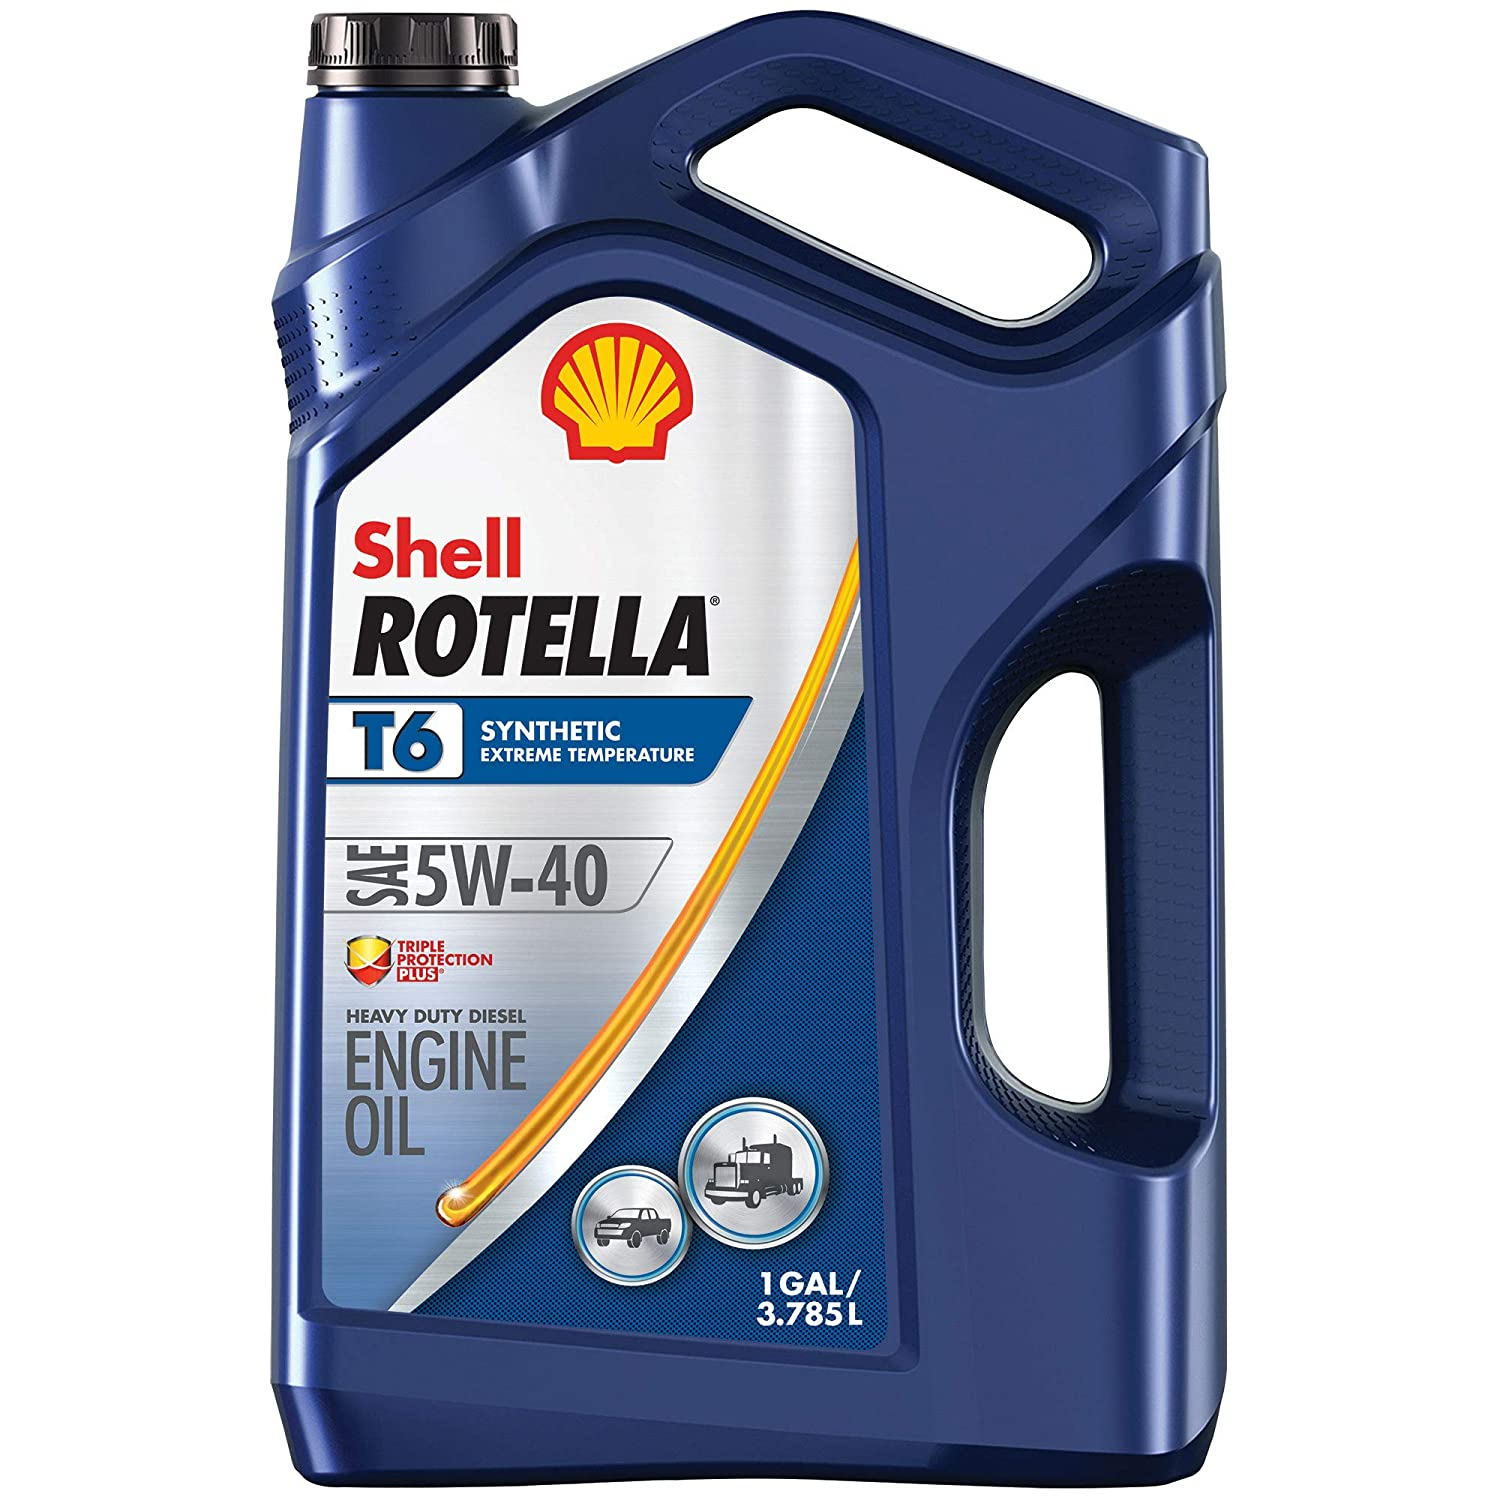 Shell Rotella T6 Motor Oil}